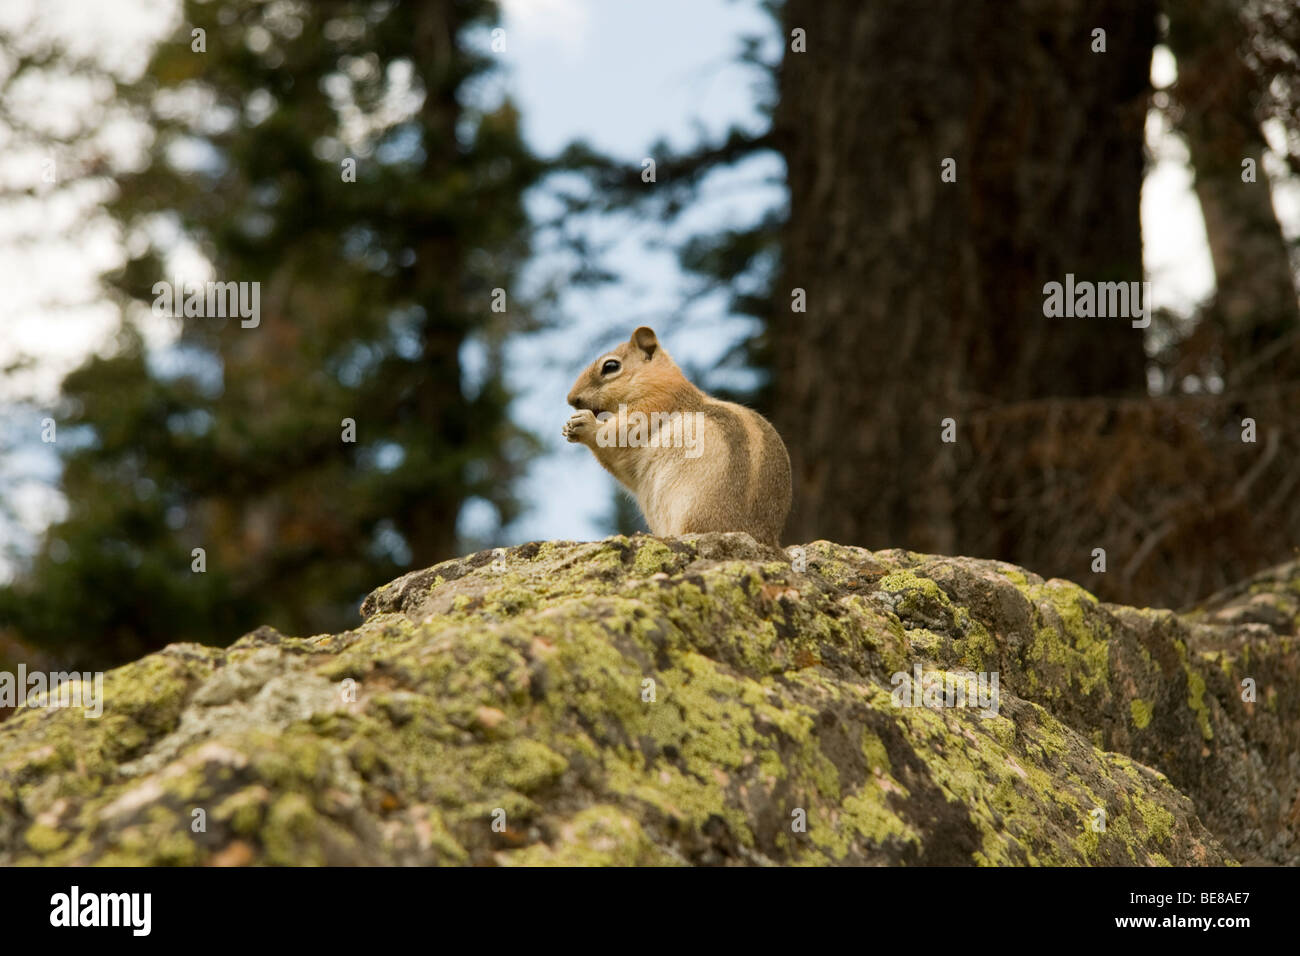 Golden Mantled Ground Squirrel, Citellus lateralis, Rocky Mountain National Park, Colorado - Stock Image